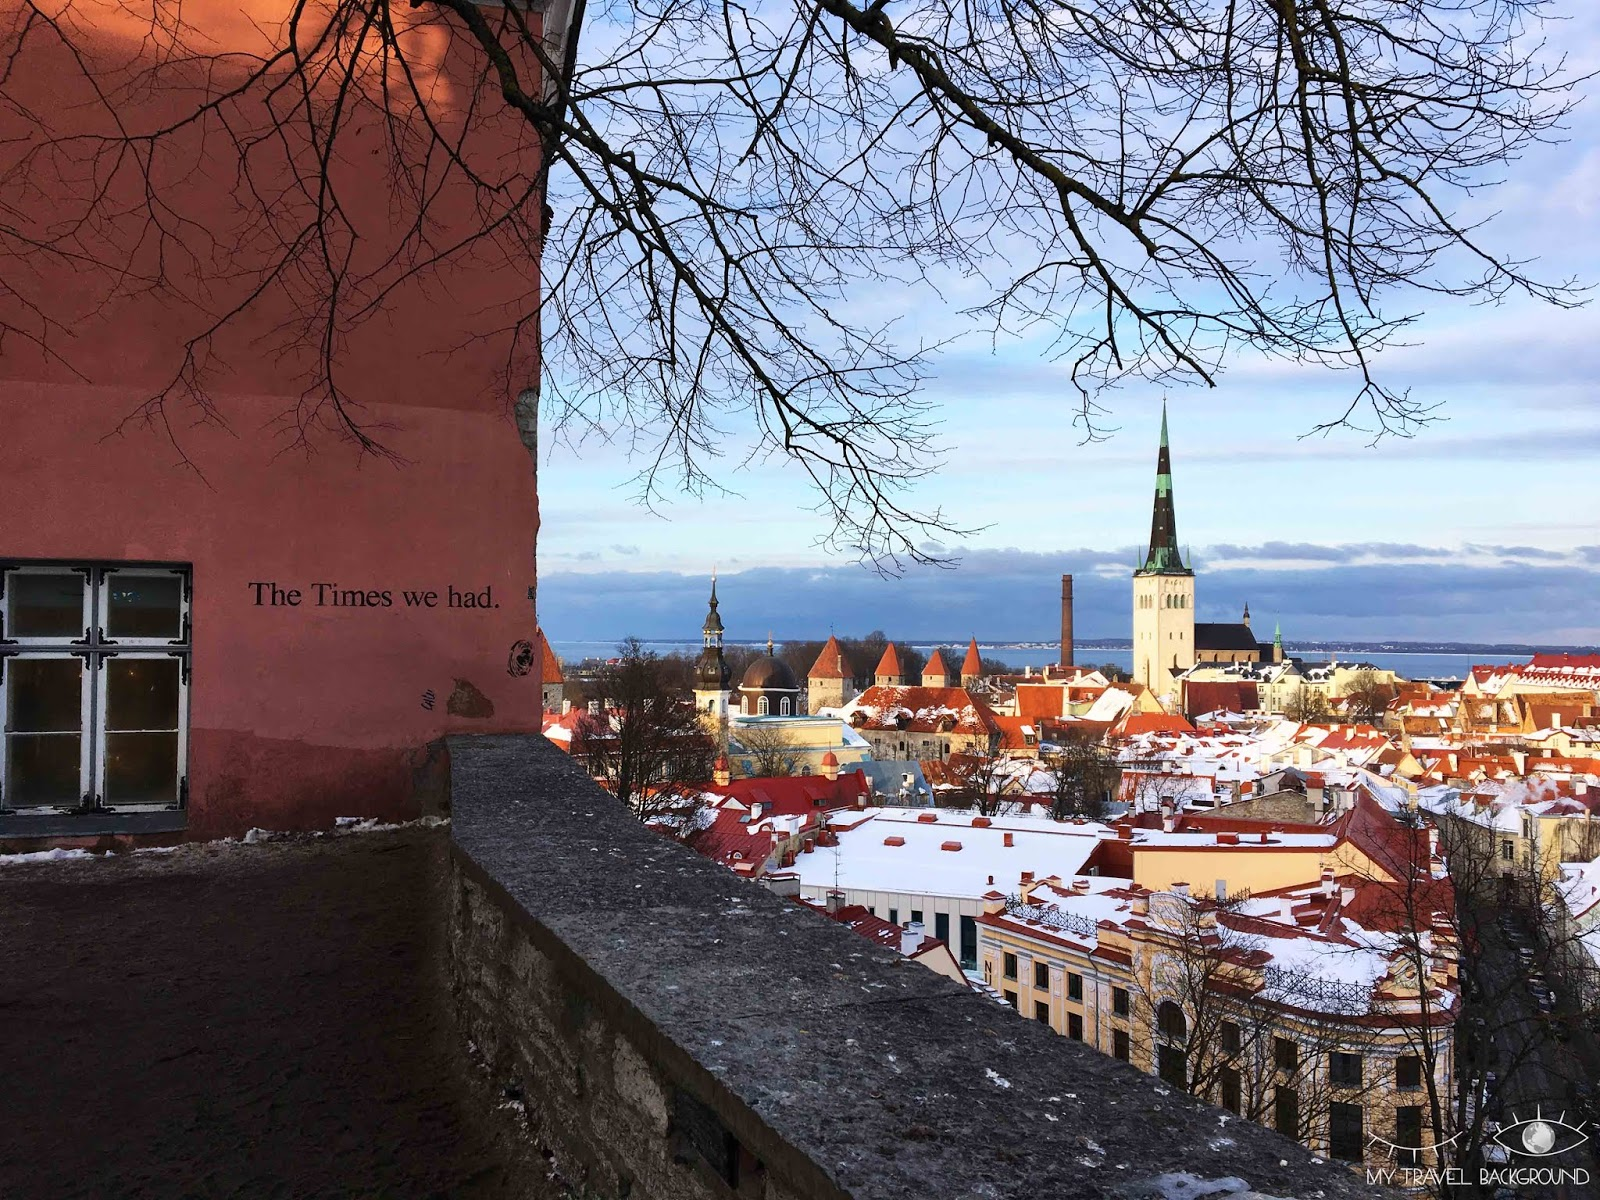 My Travel Background : carte postale d'Estonie - Tallinn